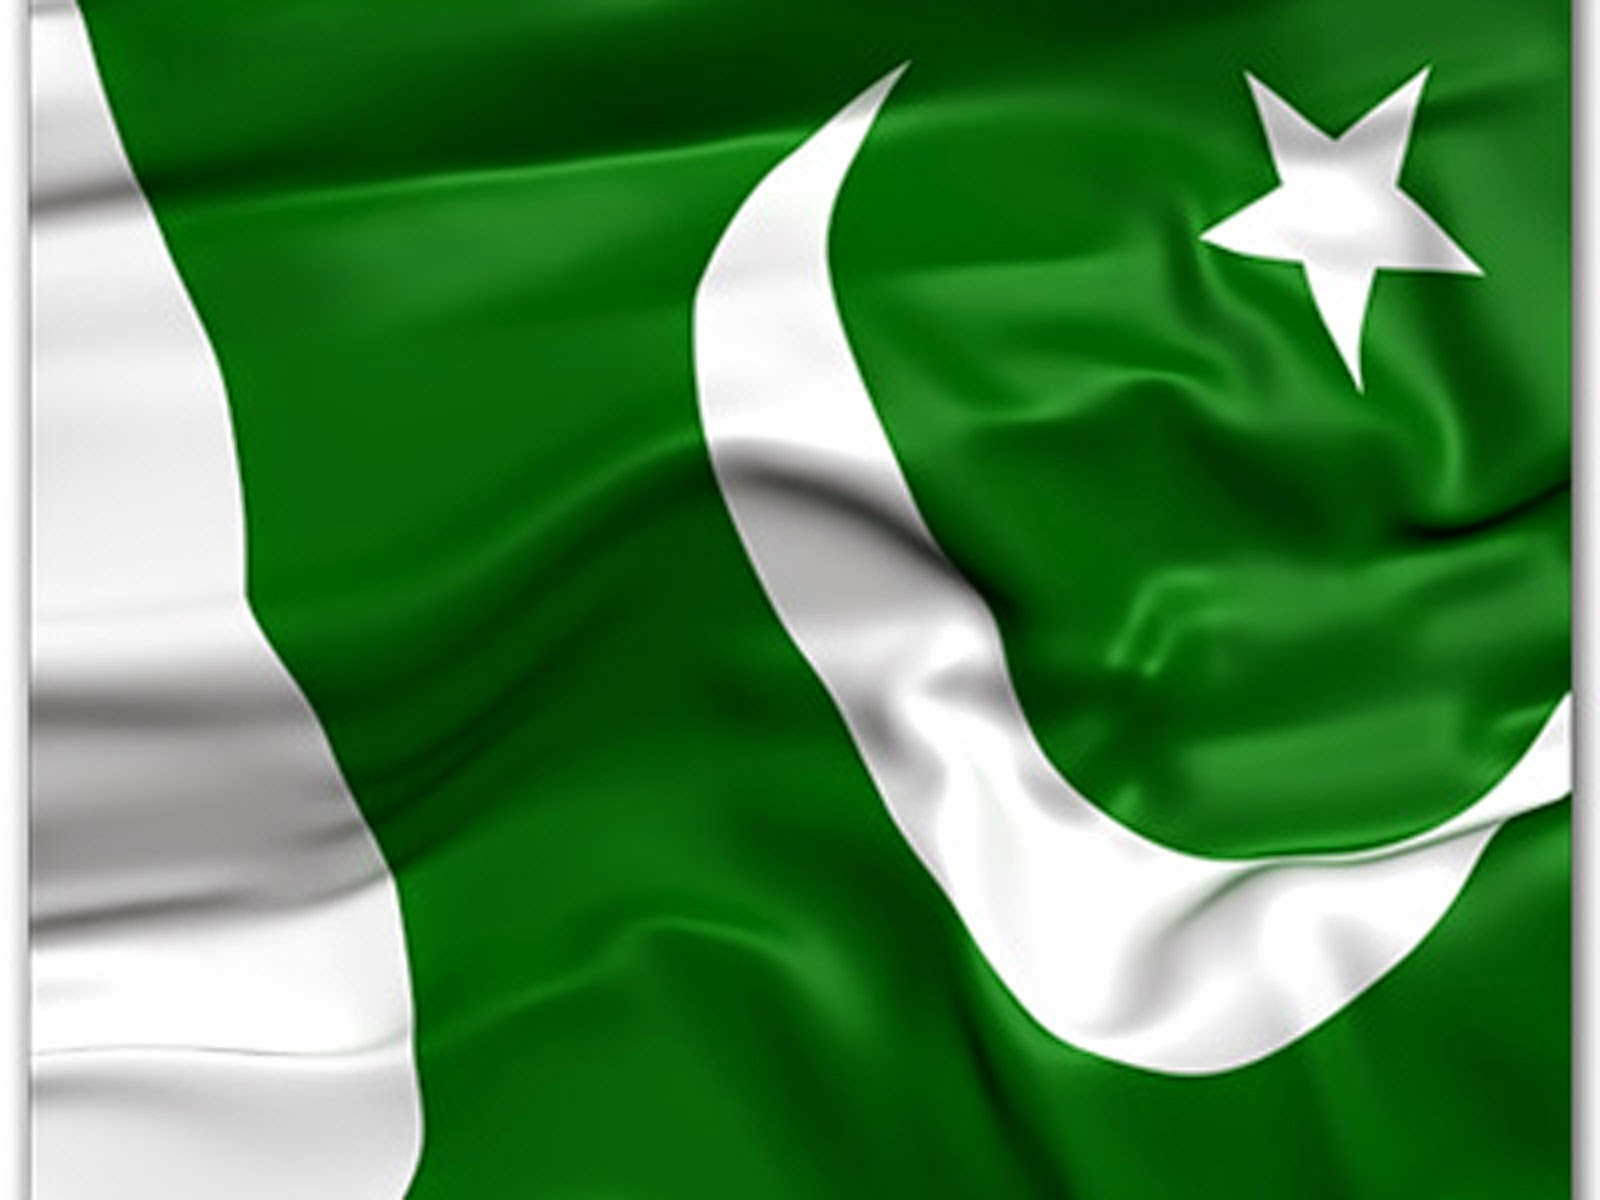 pakistan flag green color